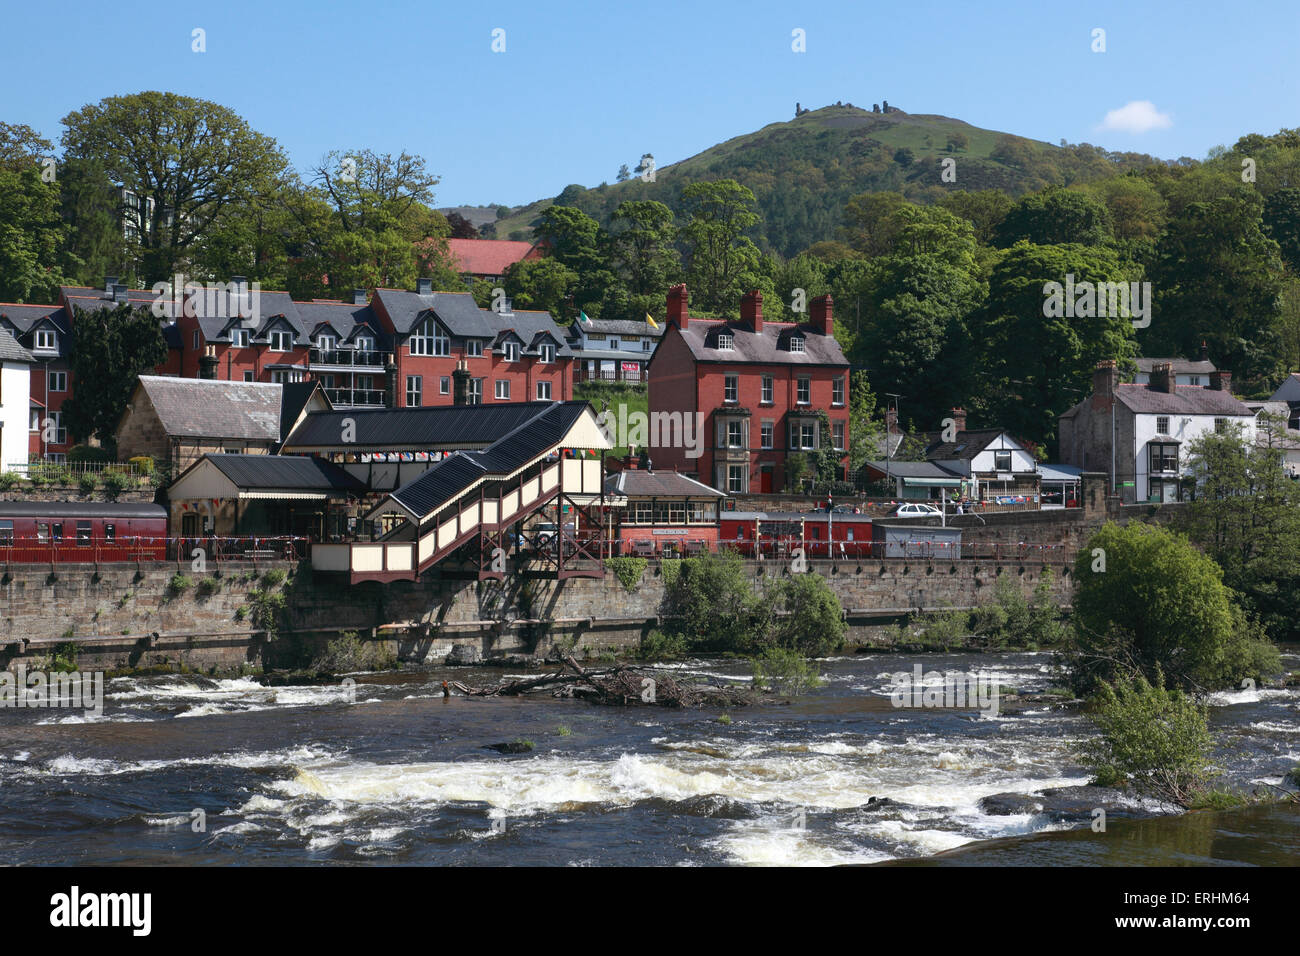 Looking across the river Dee to the station and the castle of Dinas Bran on the hilltop in Llangollen, north Wales Stock Photo